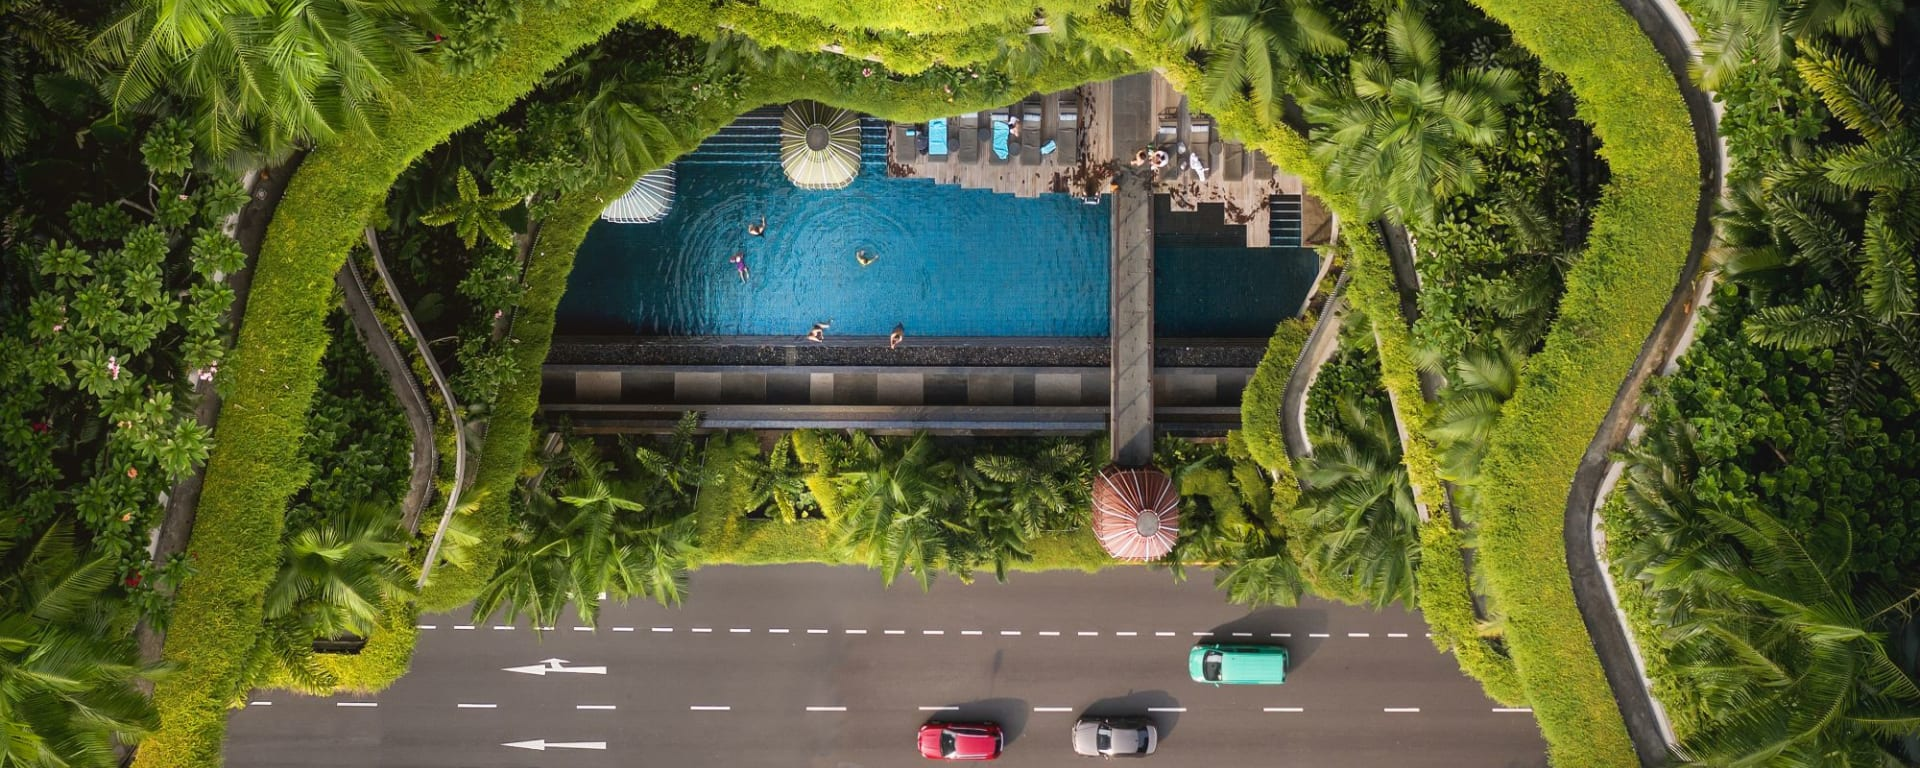 Parkroyal Collection Pickering in Singapur: Zero Energy Sky Gardens Aerial